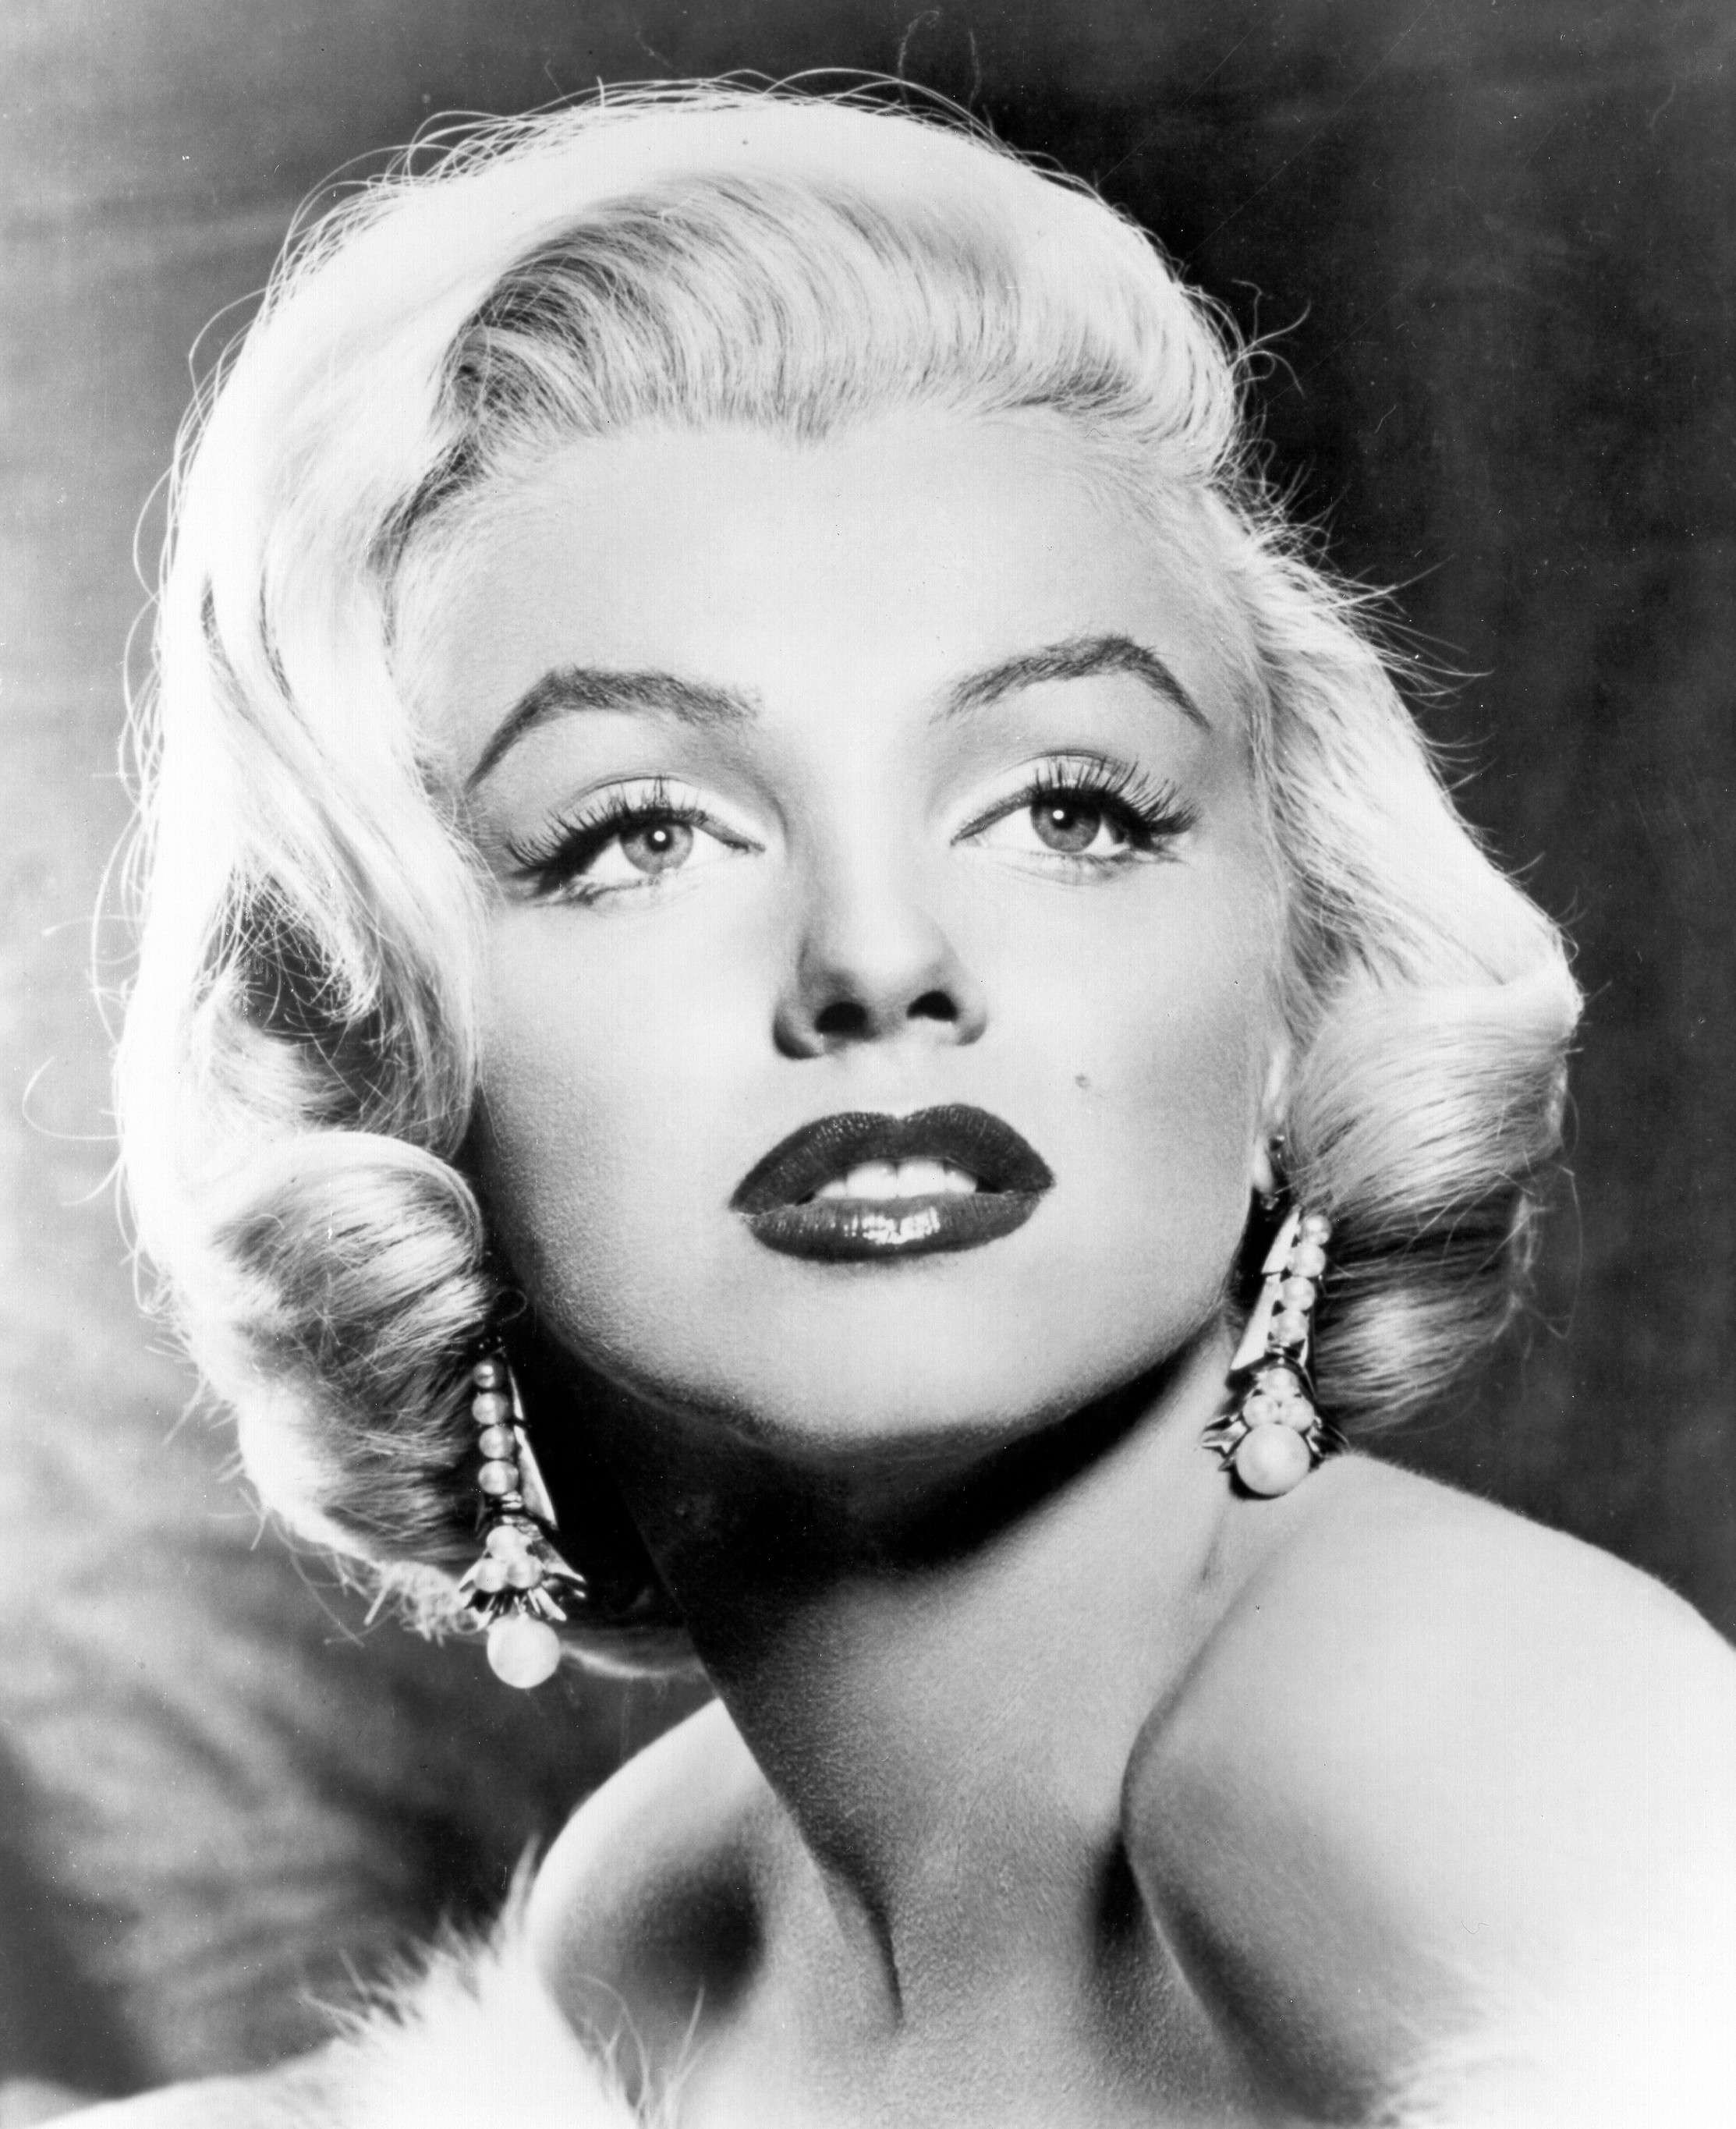 Marilyn Monroe Image Source: Wikimedia Commons